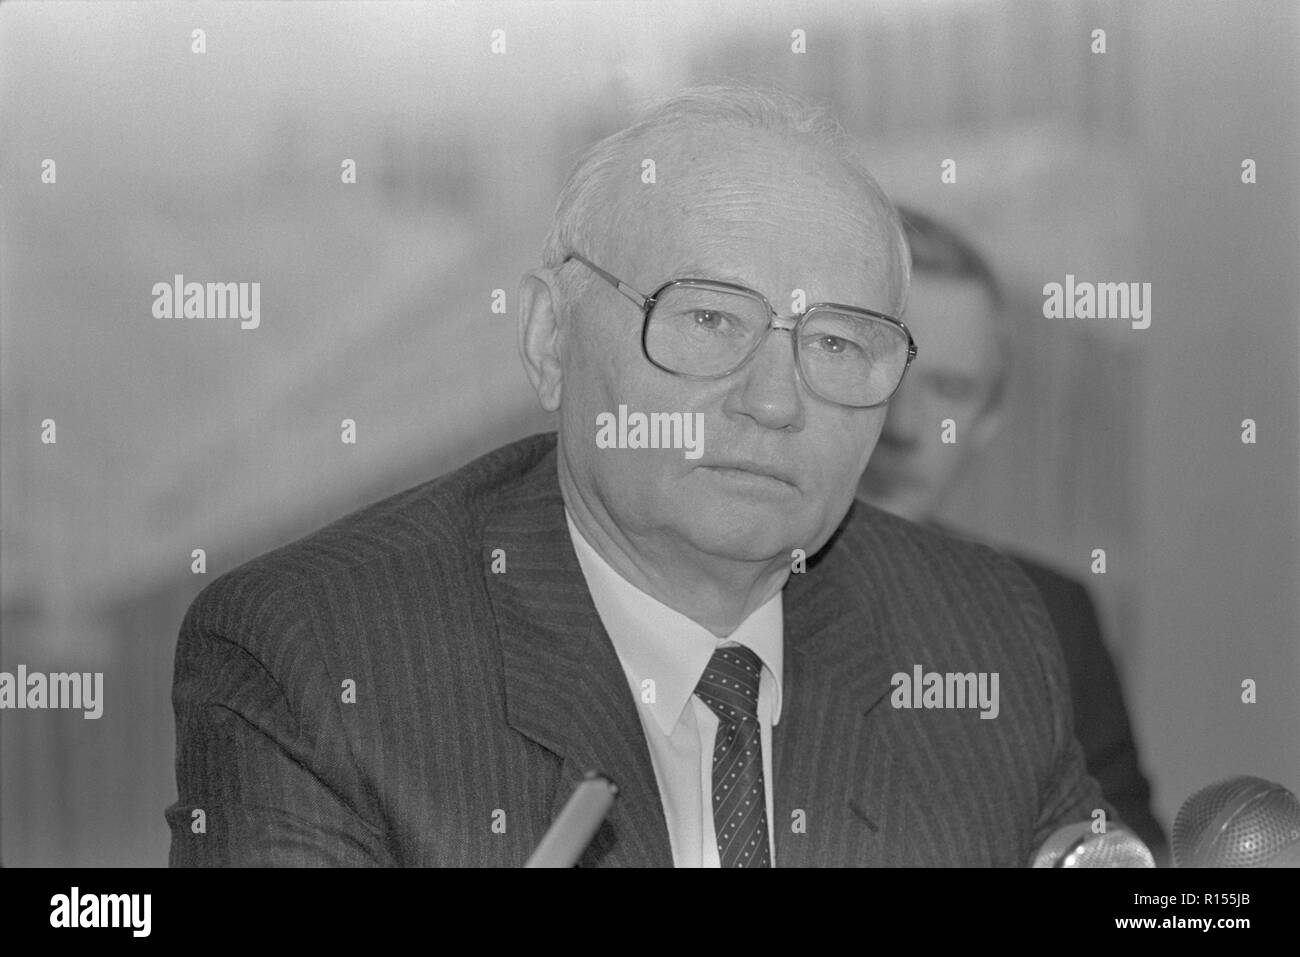 Moscow, USSR - December 26, 1990: Chairman of State Security Committee (KGB) Vladimir Alexandrovich Kryuchkov gives press-conference at 4th Congress of People's Deputies of the USSR - Stock Image